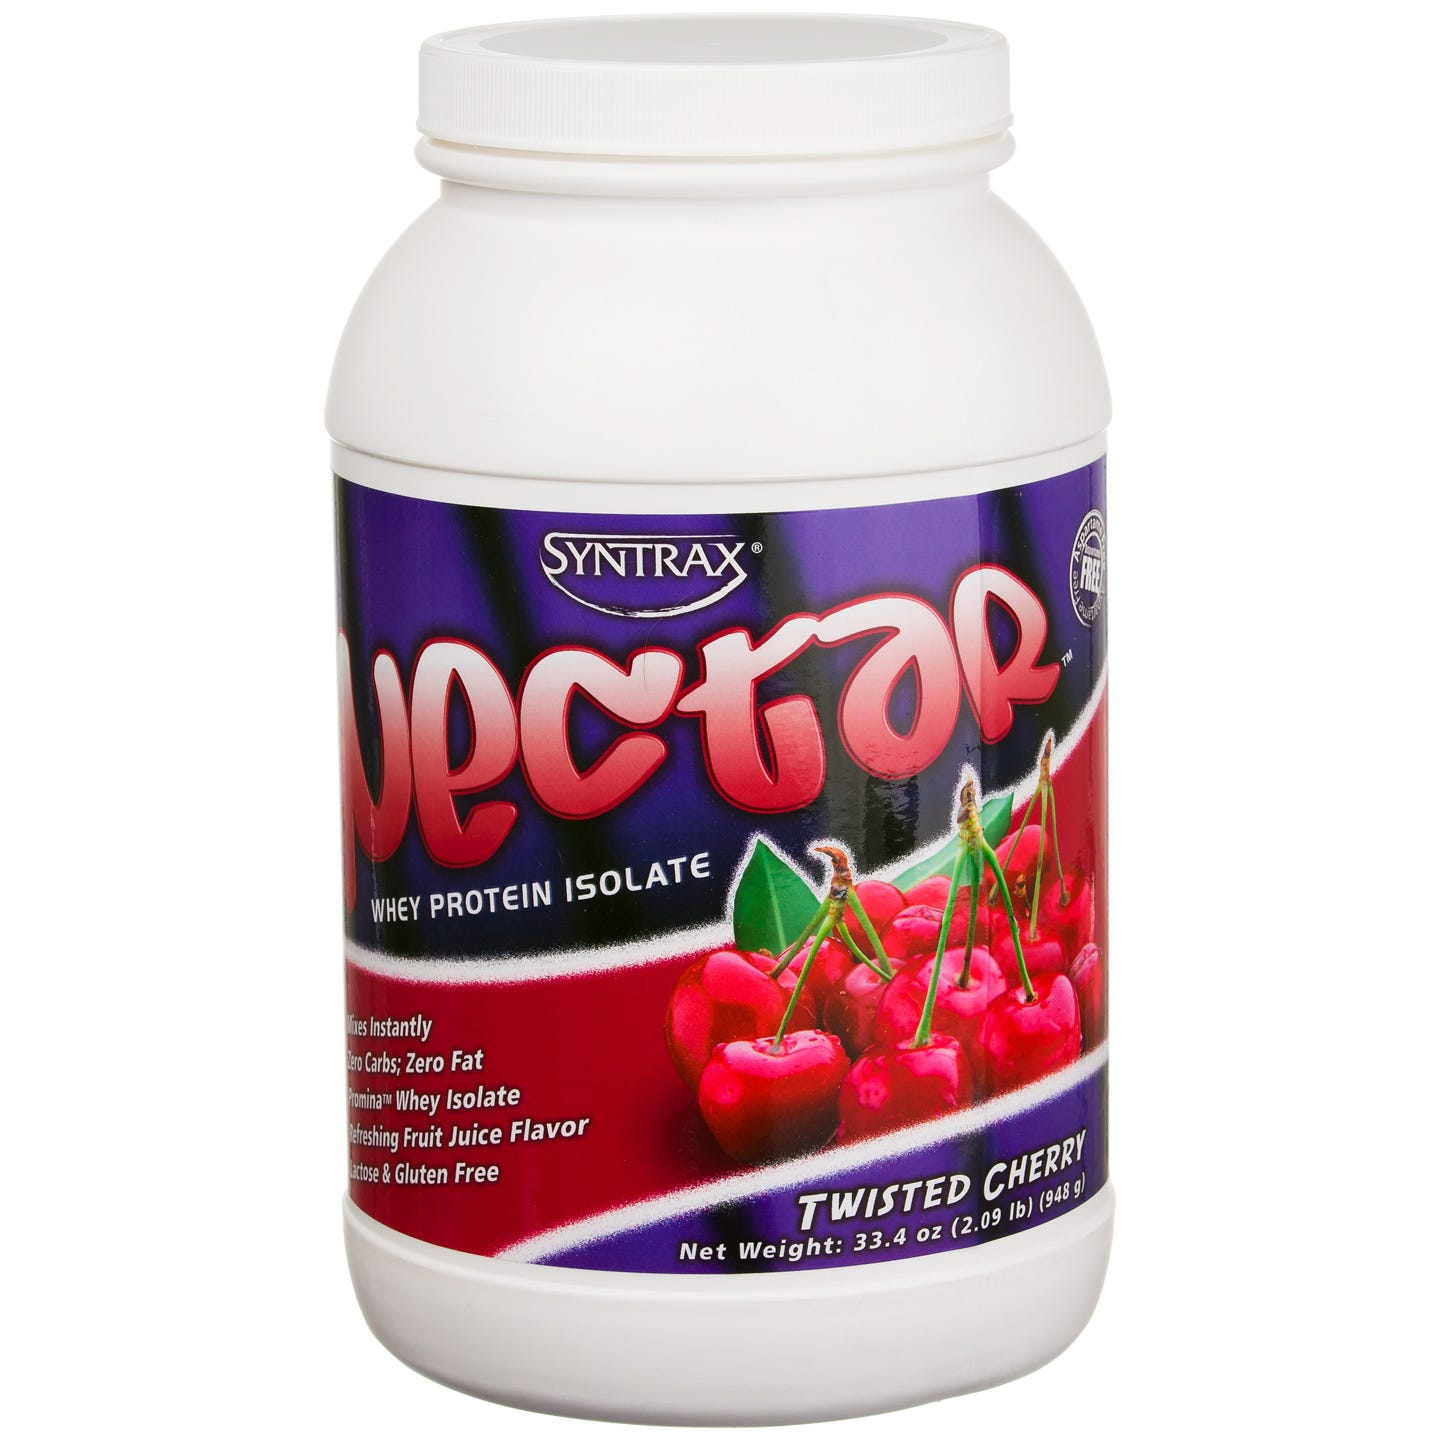 Syntrax Nectar Protein - Twisted Cherry